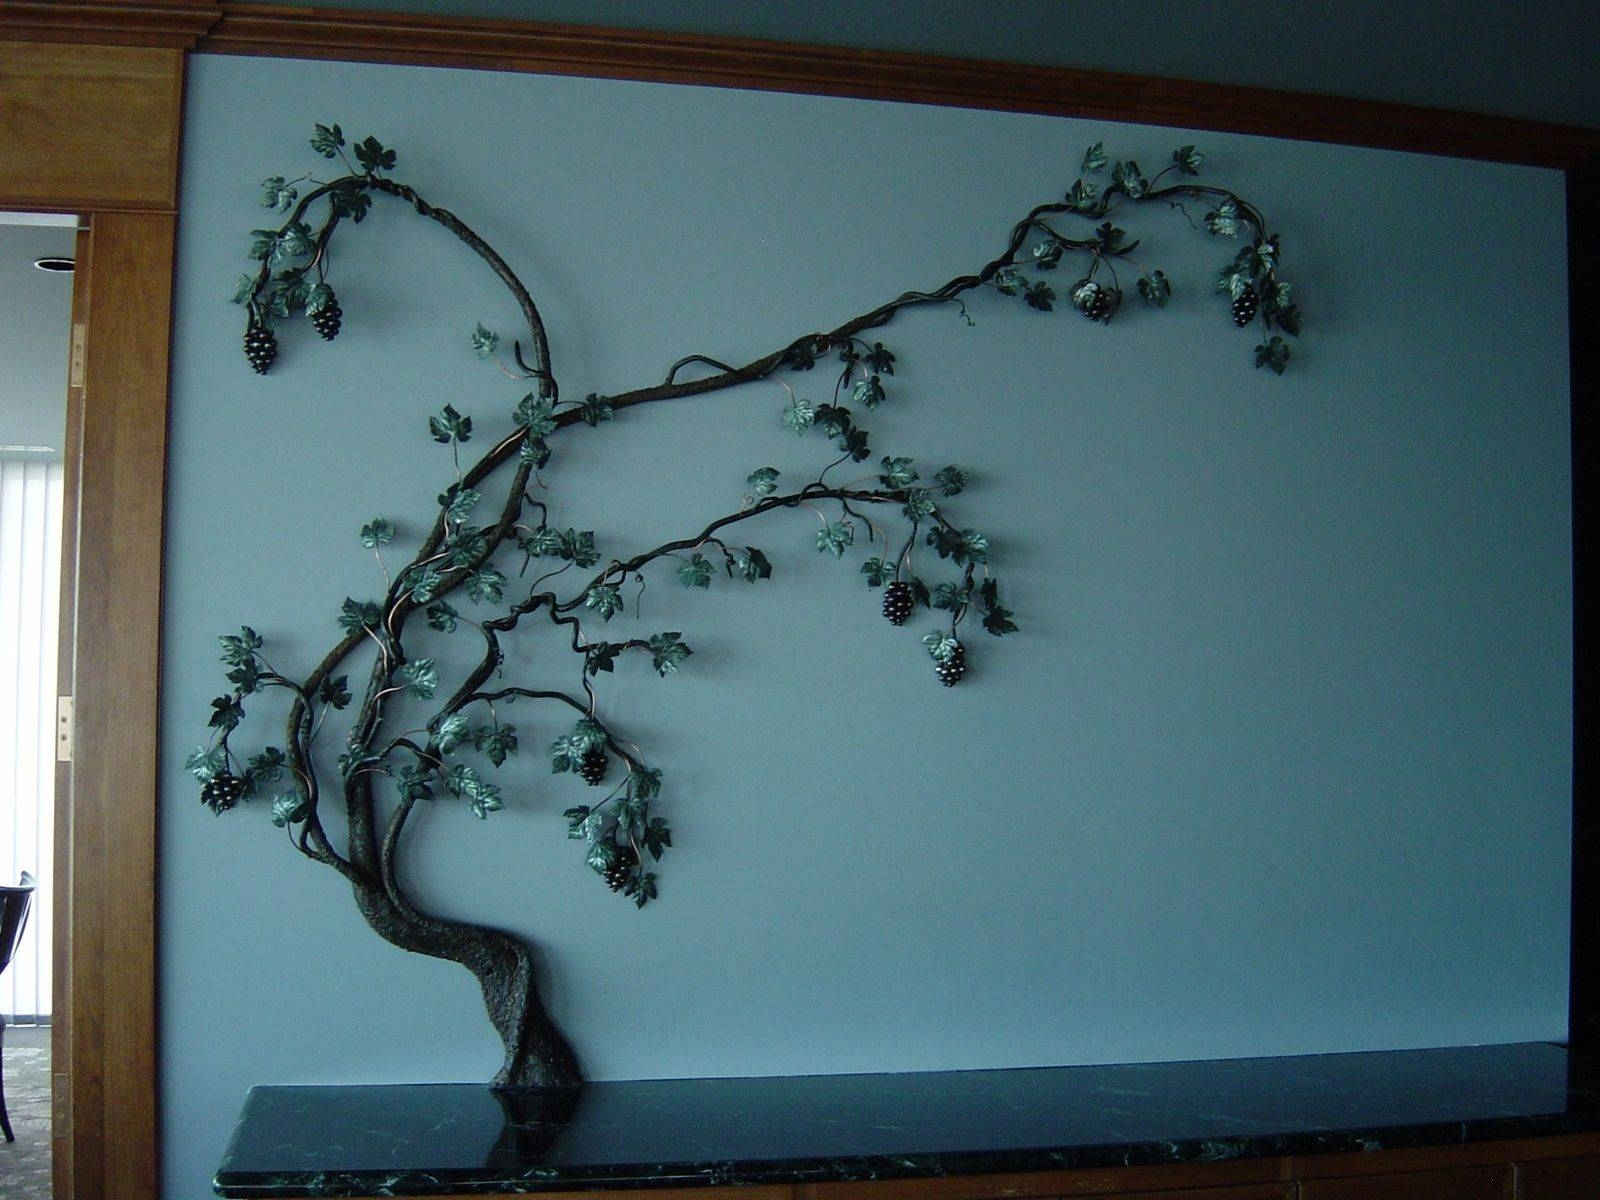 Hand Crafted Steel Grape Vine Wall Sculpturereflections From Regarding Newest Grape Wall Art (View 14 of 22)